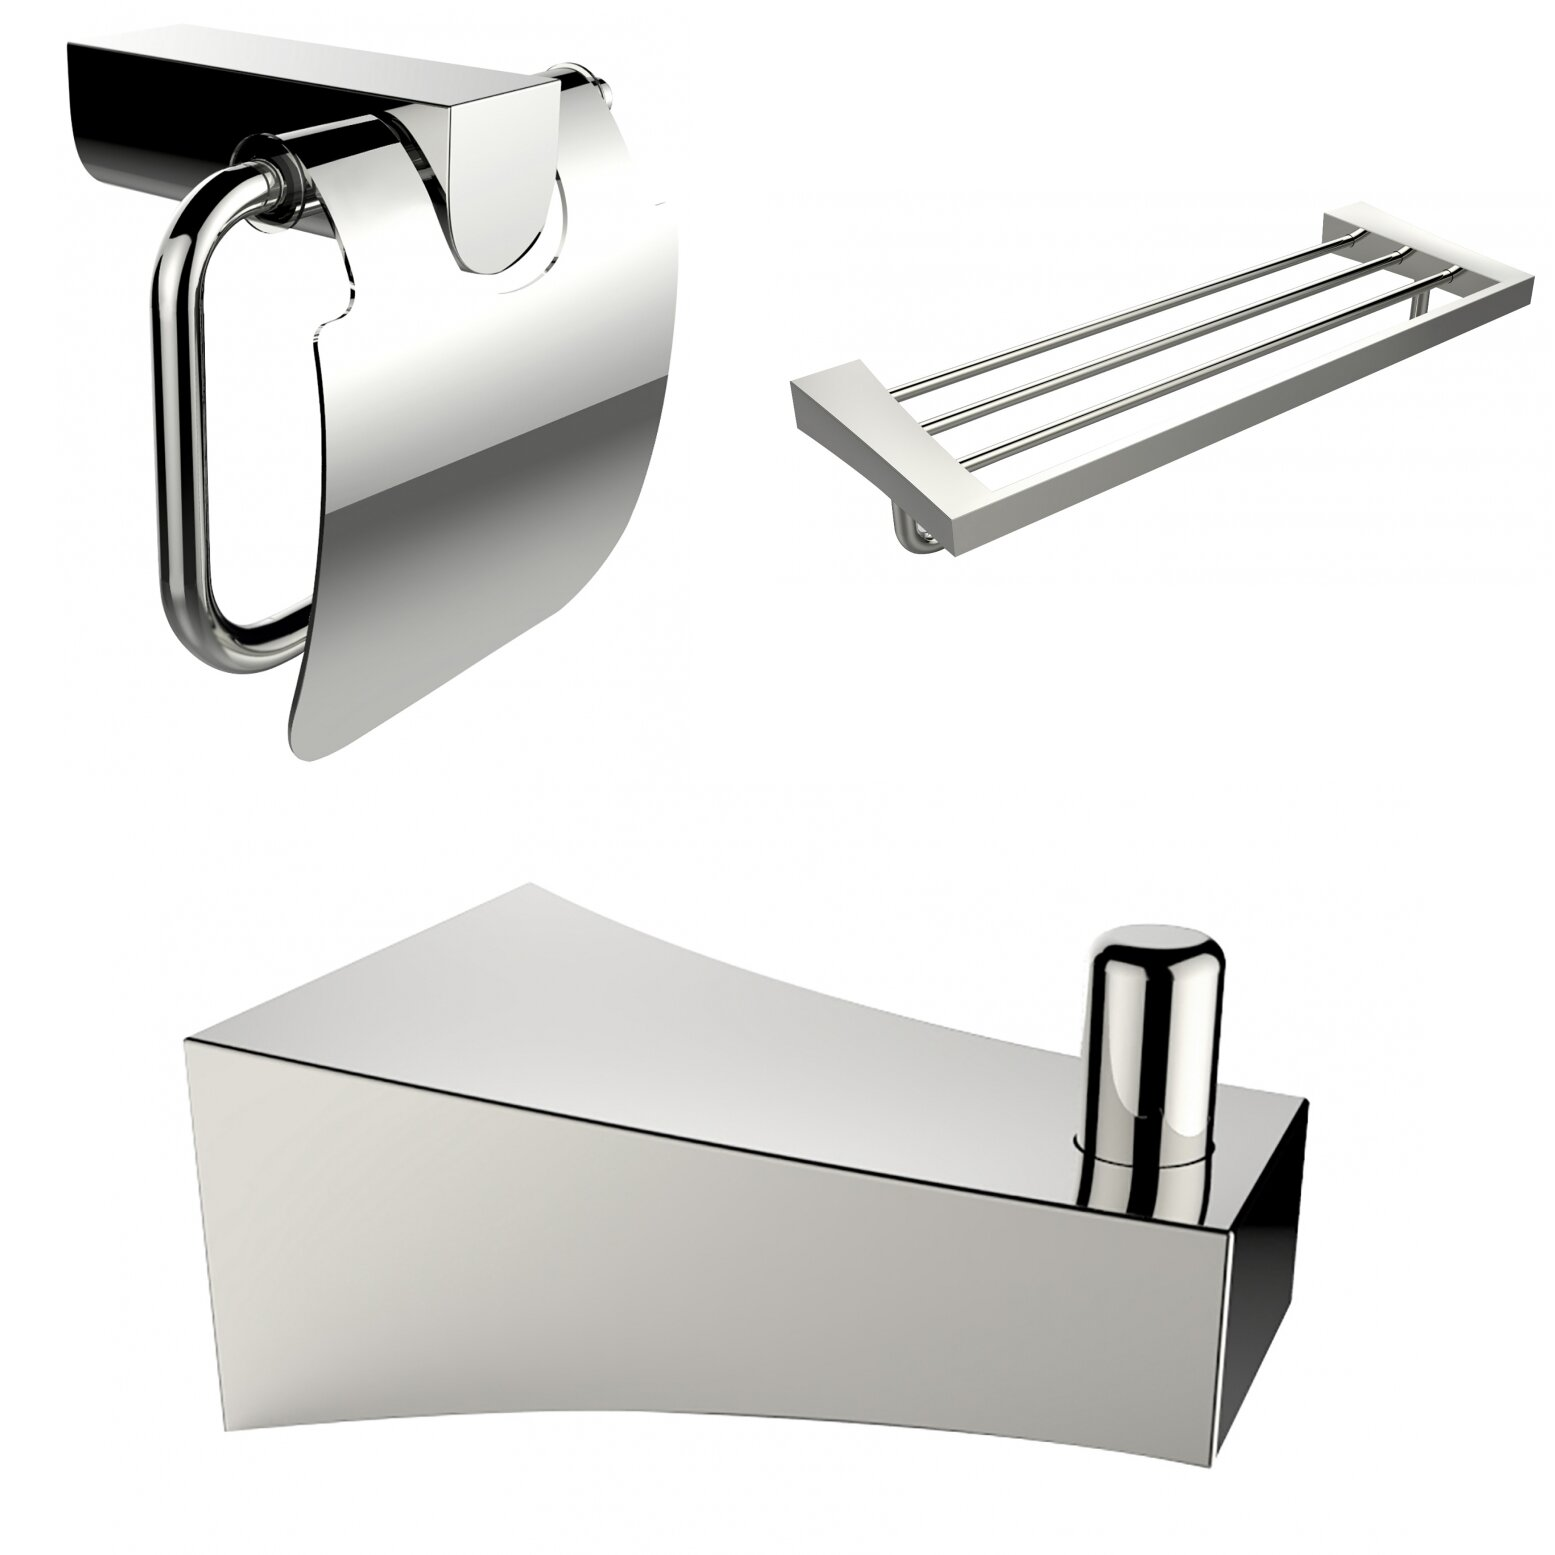 Home bathroom timpson towel bar - Barbed Wire Bathroom